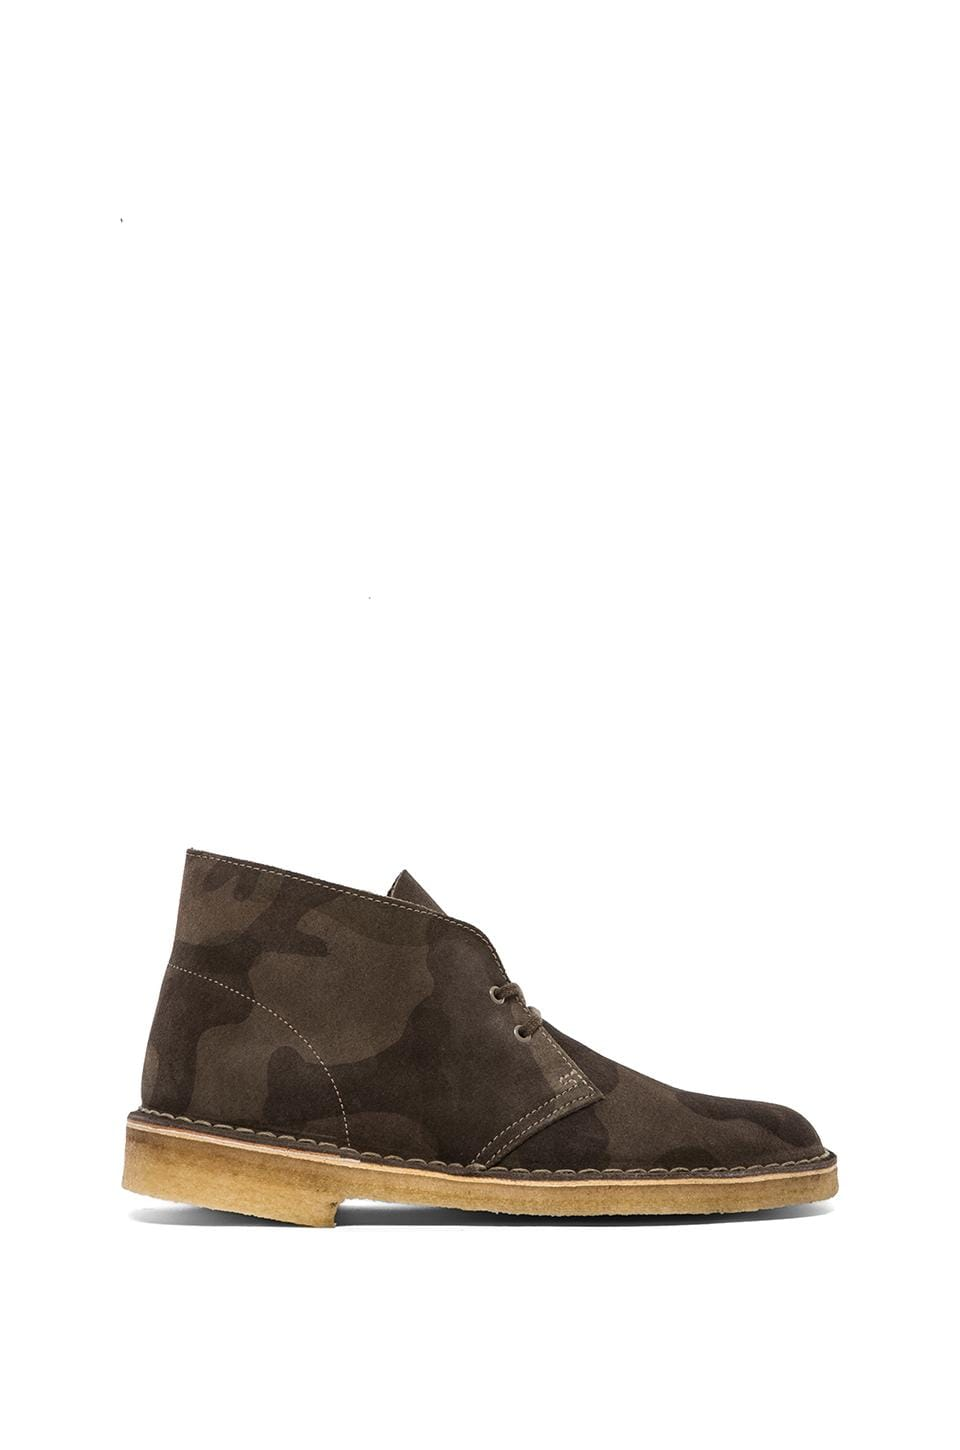 Clarks Originals Desert Boot in Camouflage Green Suede